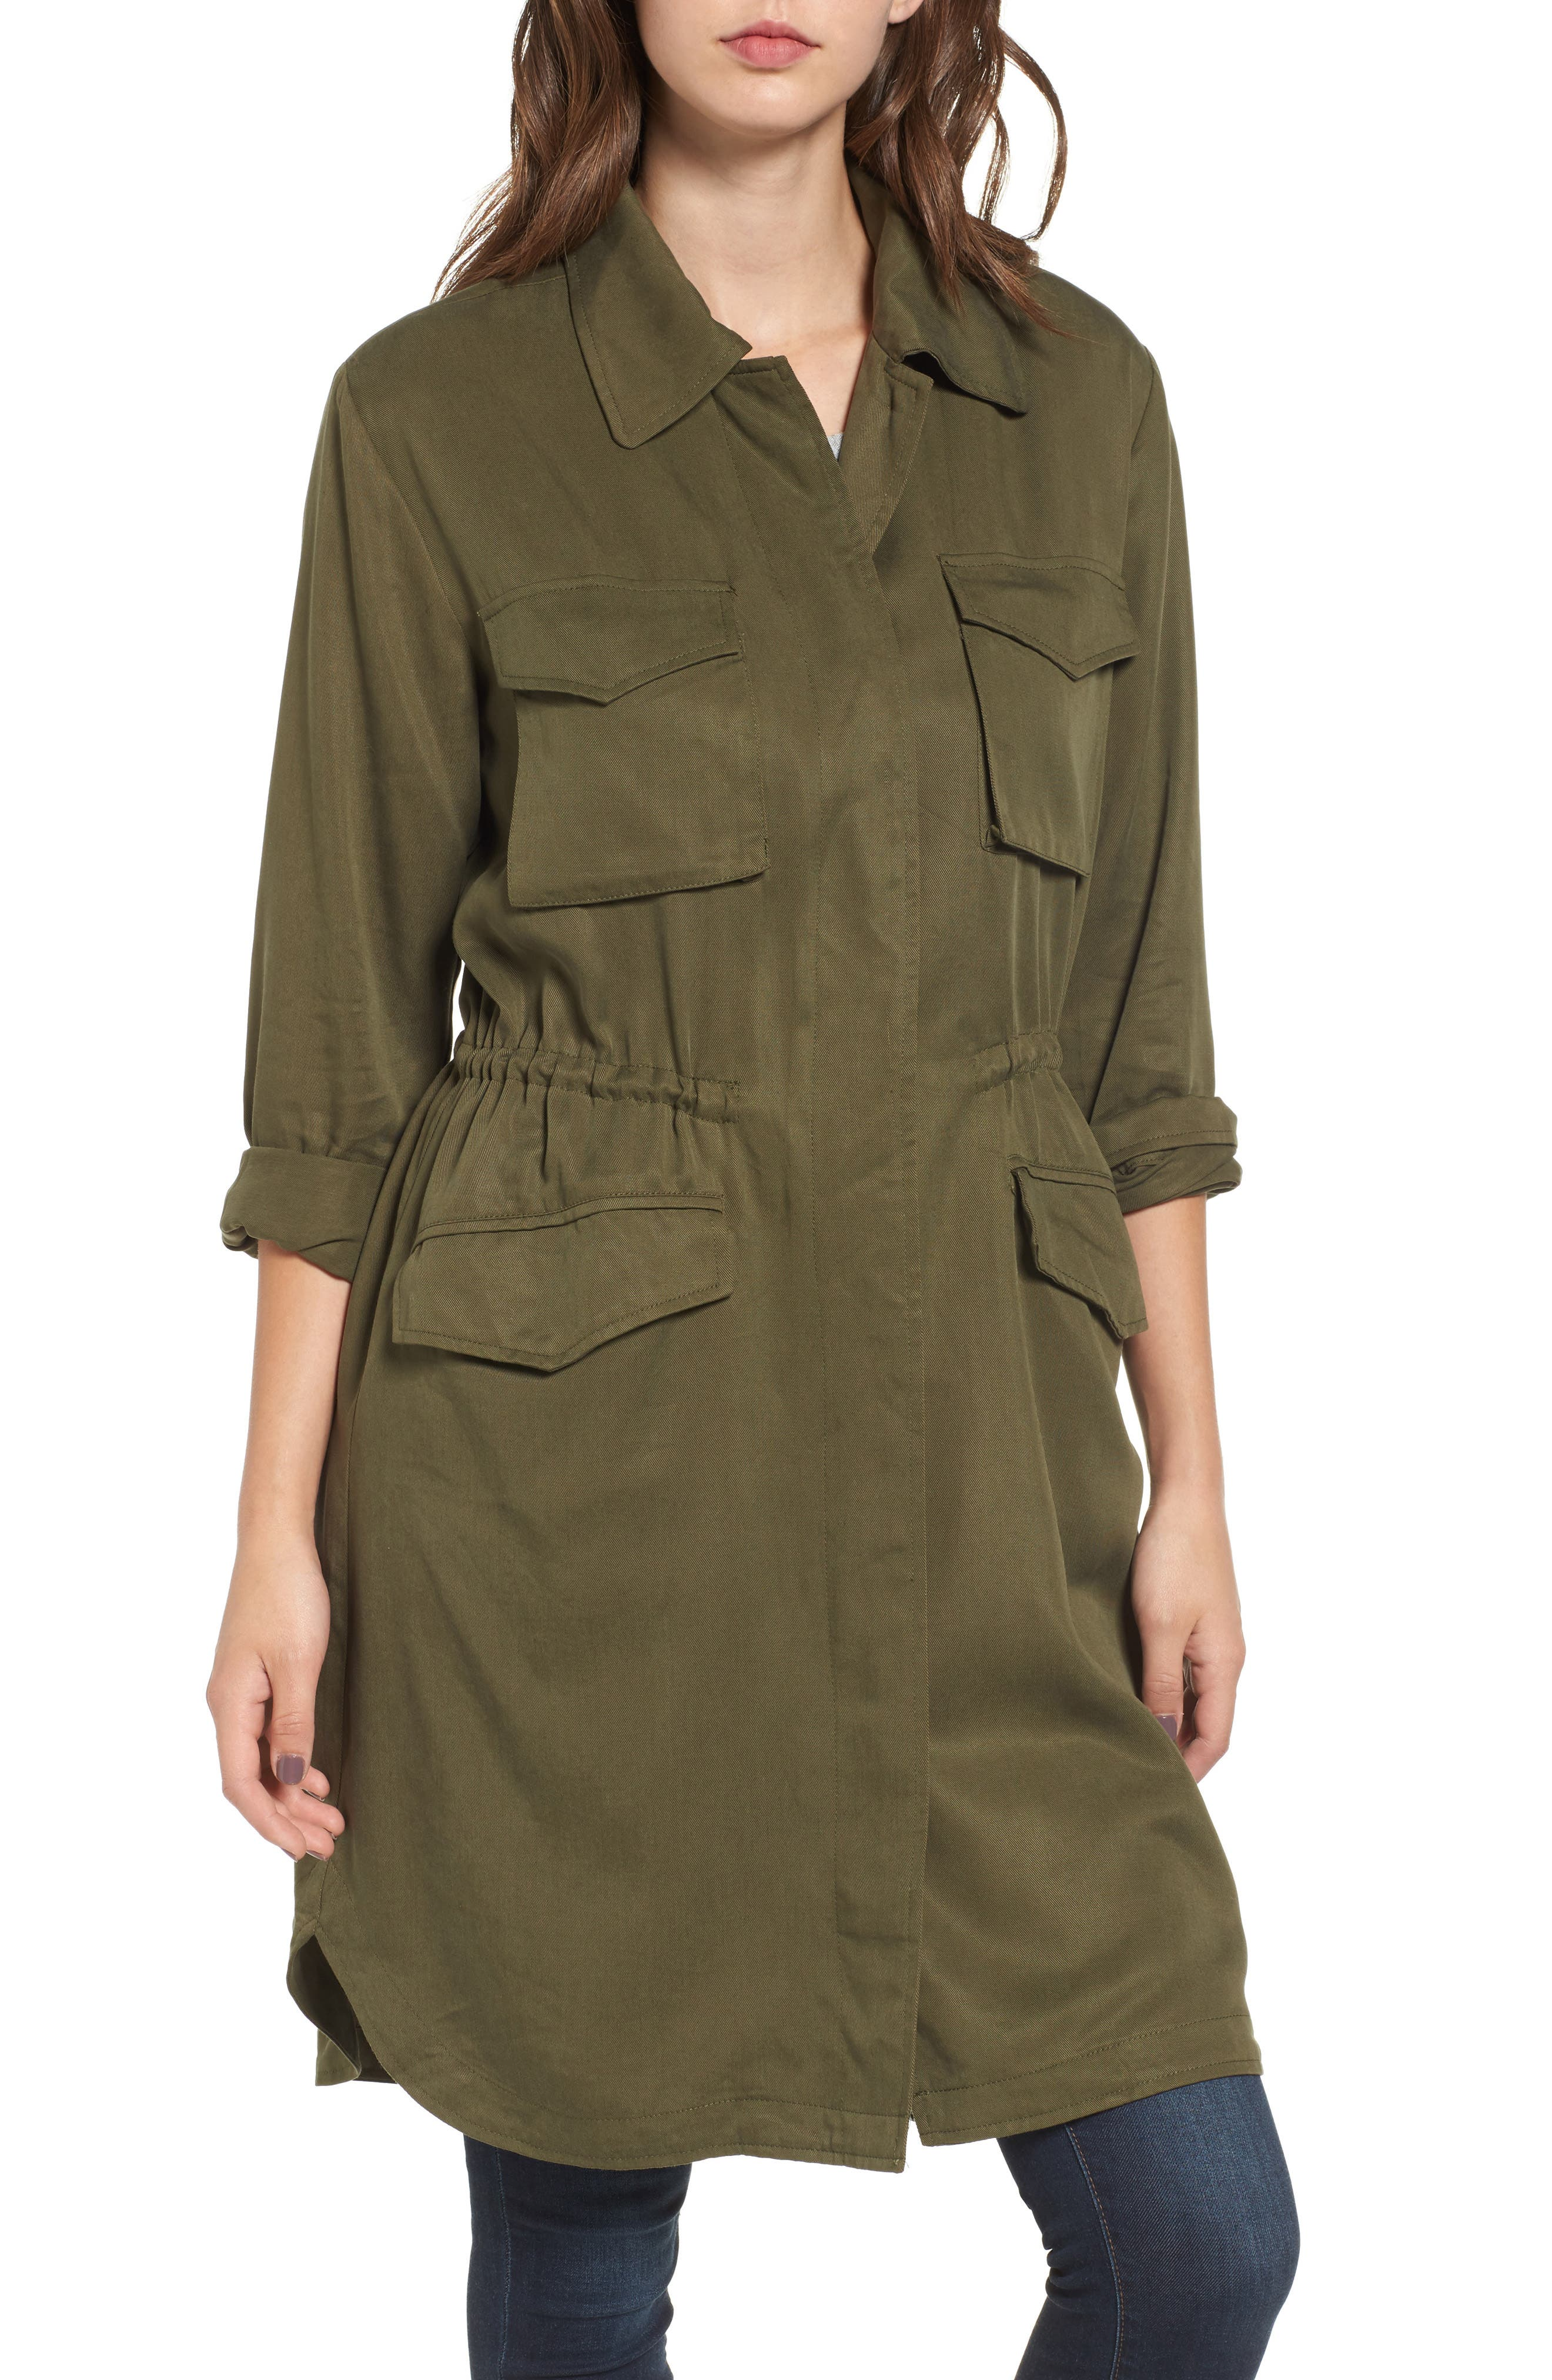 Averie Drawstring Waist Army Coat,                             Alternate thumbnail 5, color,